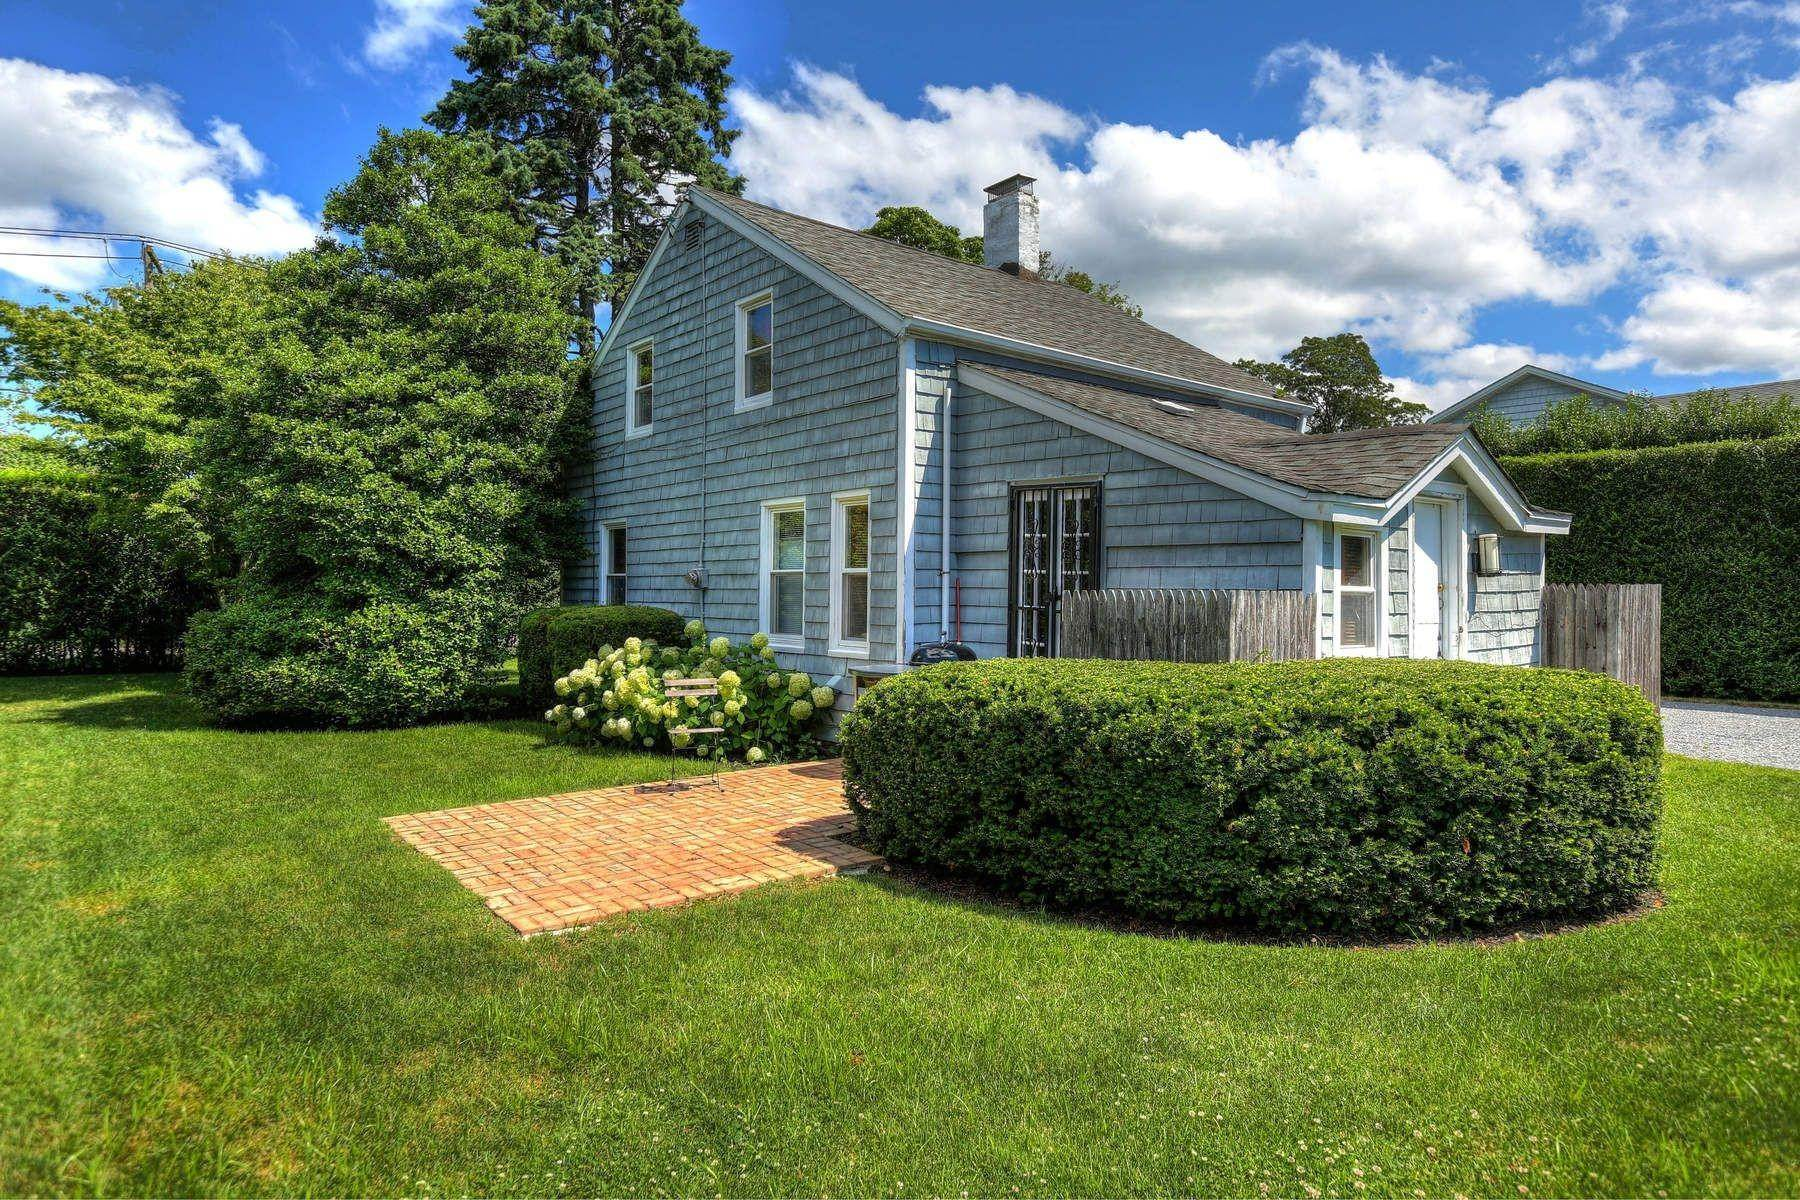 Single Family Home for Sale at Best Value In The Village 98 Powell Avenue, Southampton, NY 11968